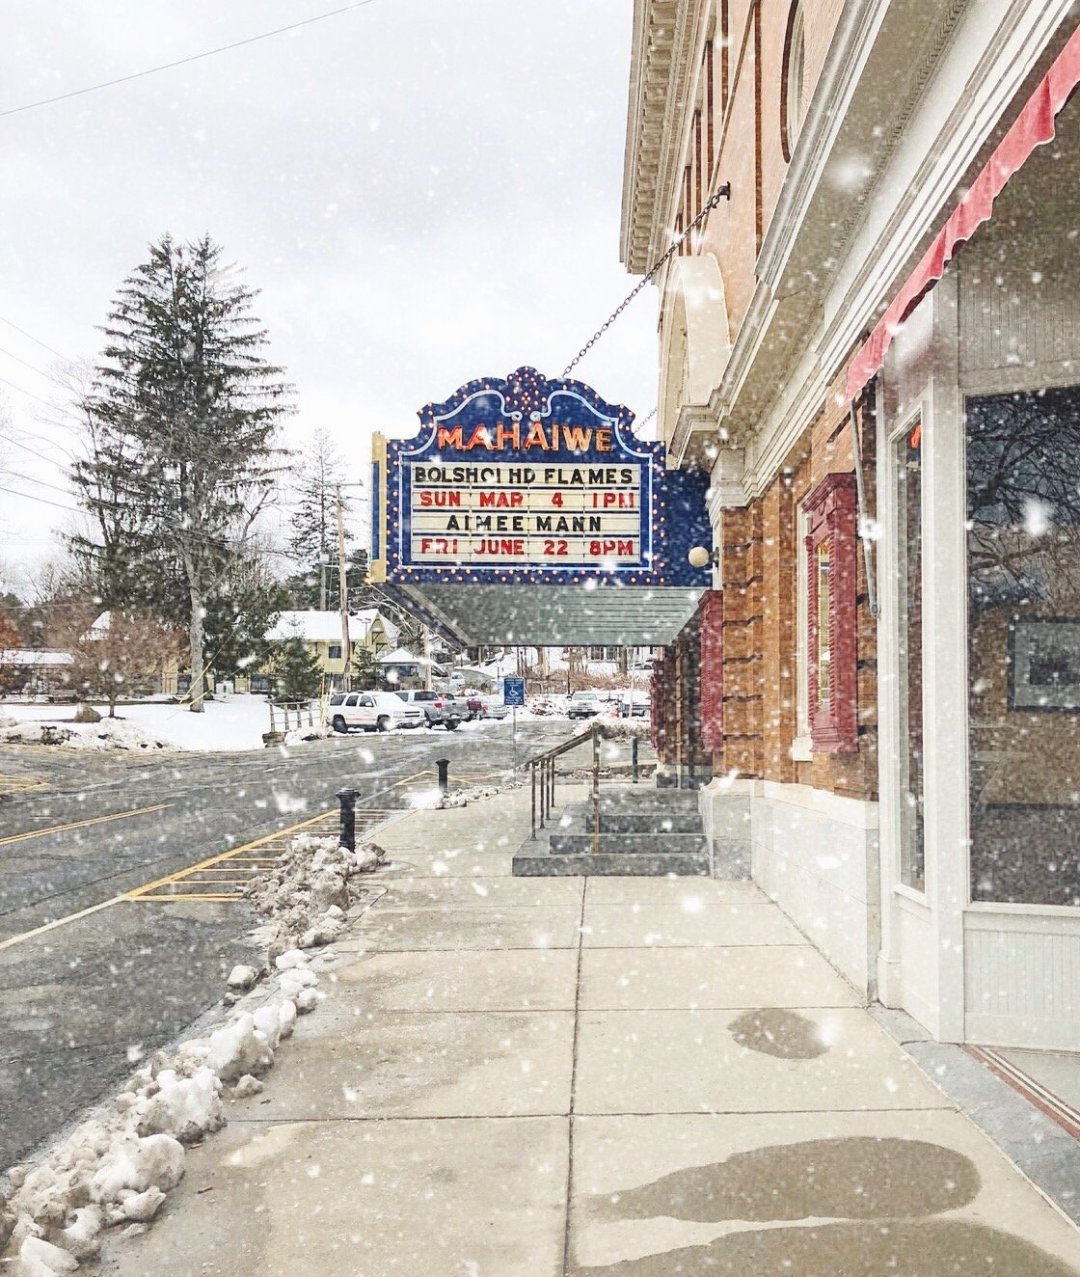 mahaiwe theater great barrington massachusetts berkshires